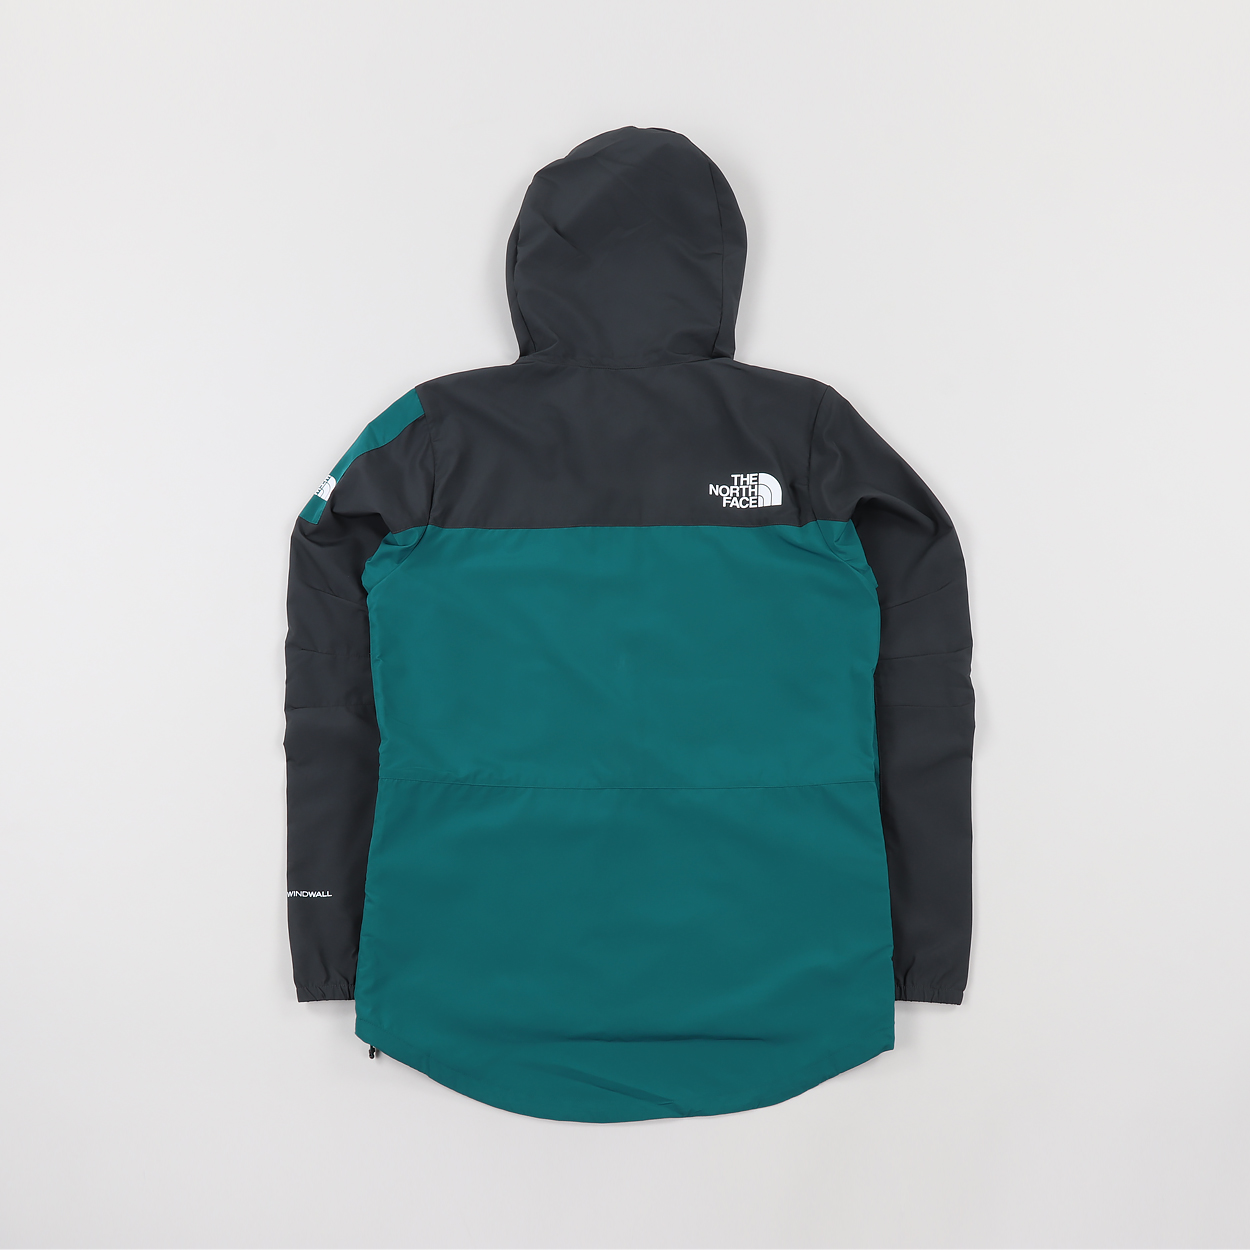 c12f69f1b6d5 A lightweight reimagination of one of The North Face s highest regarded  jackets